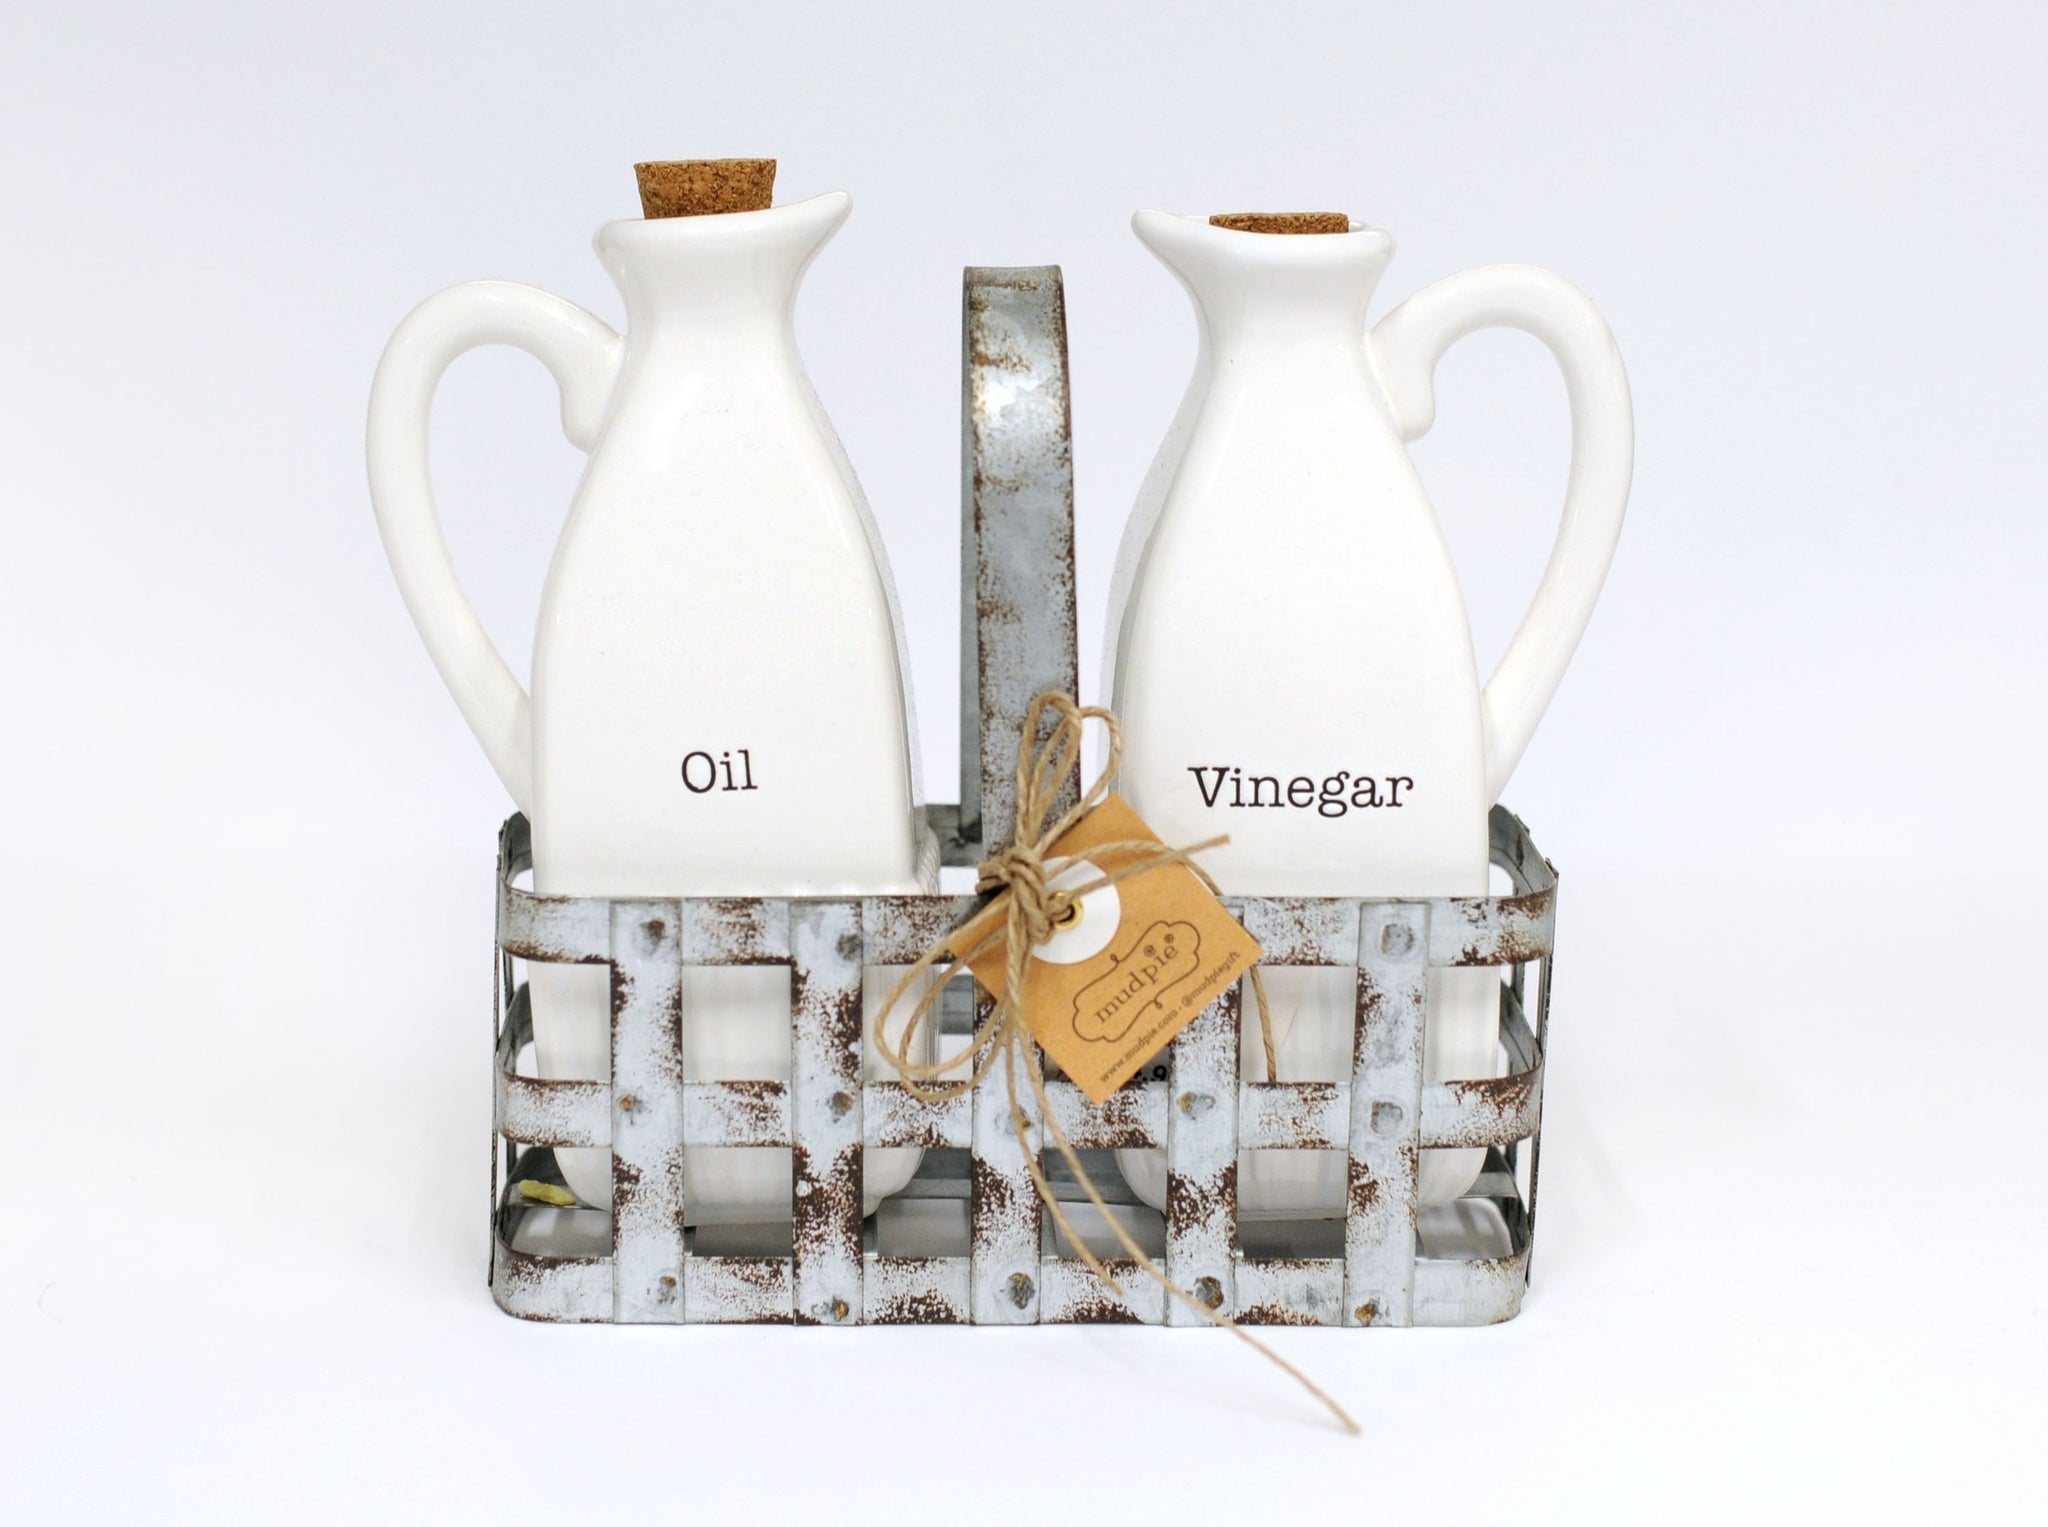 Oil and Vinegar Bottles with Metal Caddy